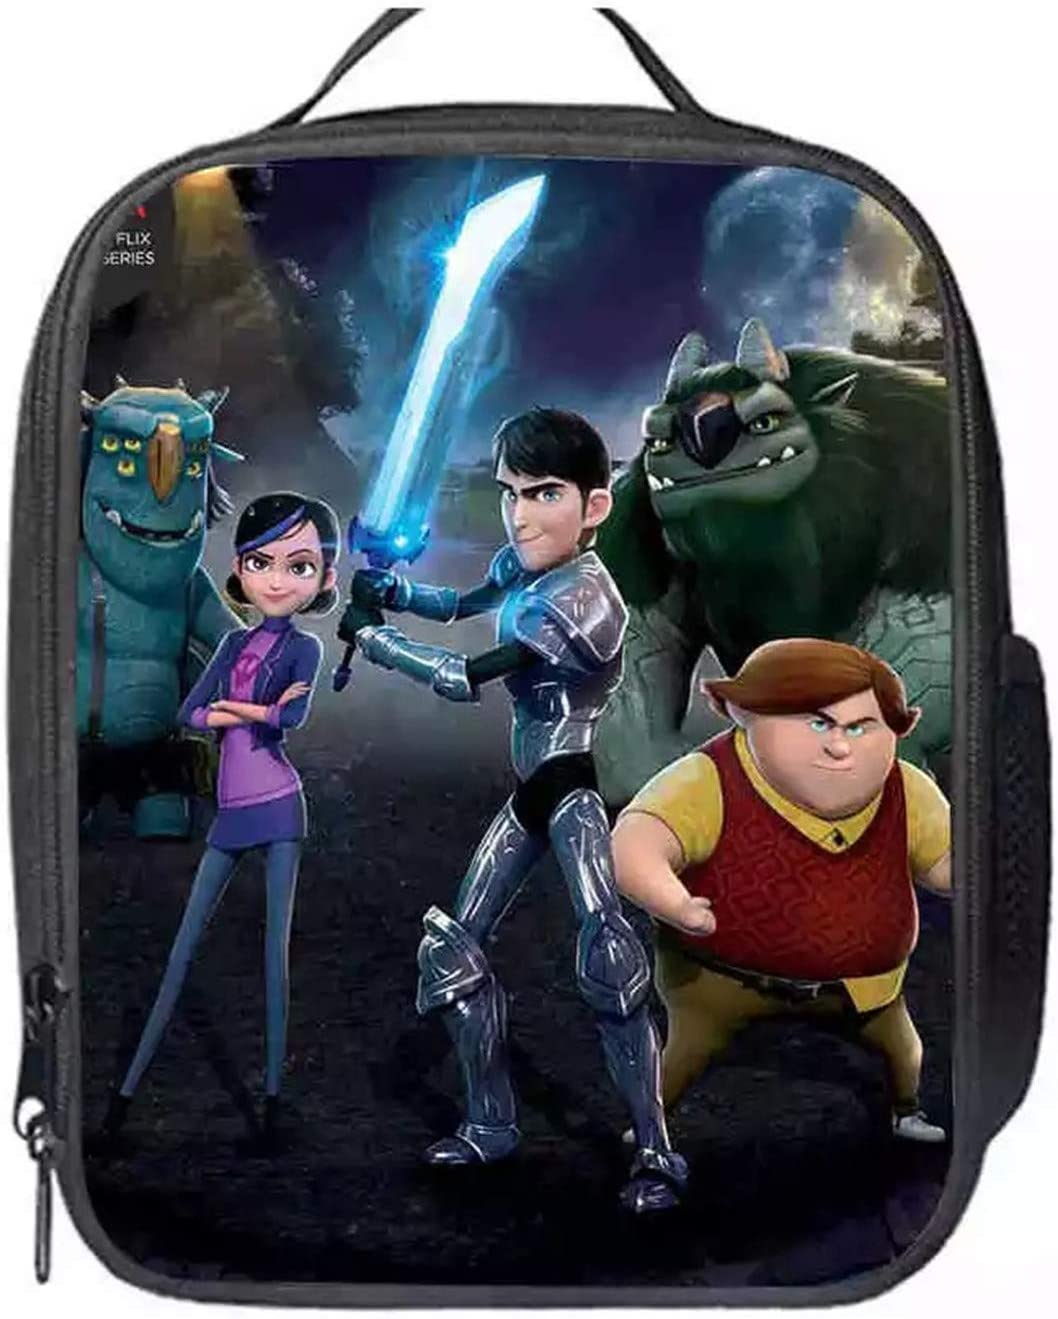 Sales of SALE items from new works XCO-LEE Kids Child Los Angeles Mall Trollhunters Lunch Wa Boxes-Graphic Insulated